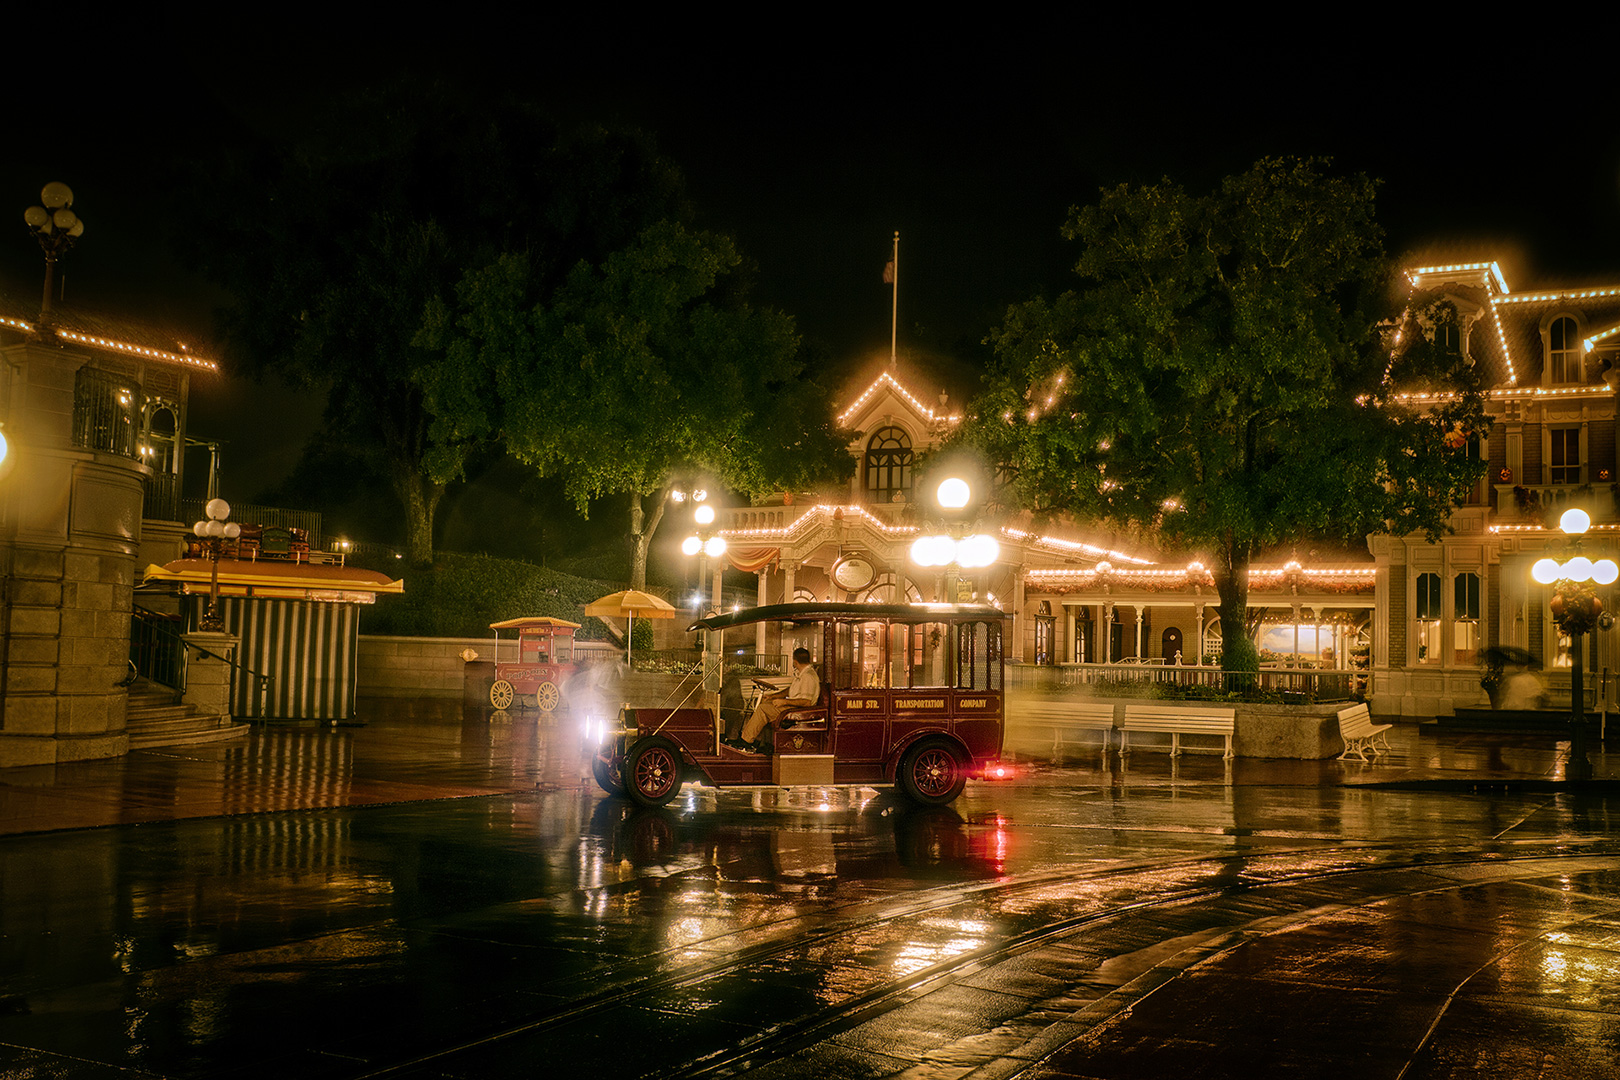 Disney Photography, Disney World Photography, Disneyland Photography, Disney Photos, Disney Pictures, Walt Disney World, The Magic Kingdom, Walt Disney, Mickey Mouse, Orlando, Florida, Theme Park, Transportation, Main Street USA, Vintage Car